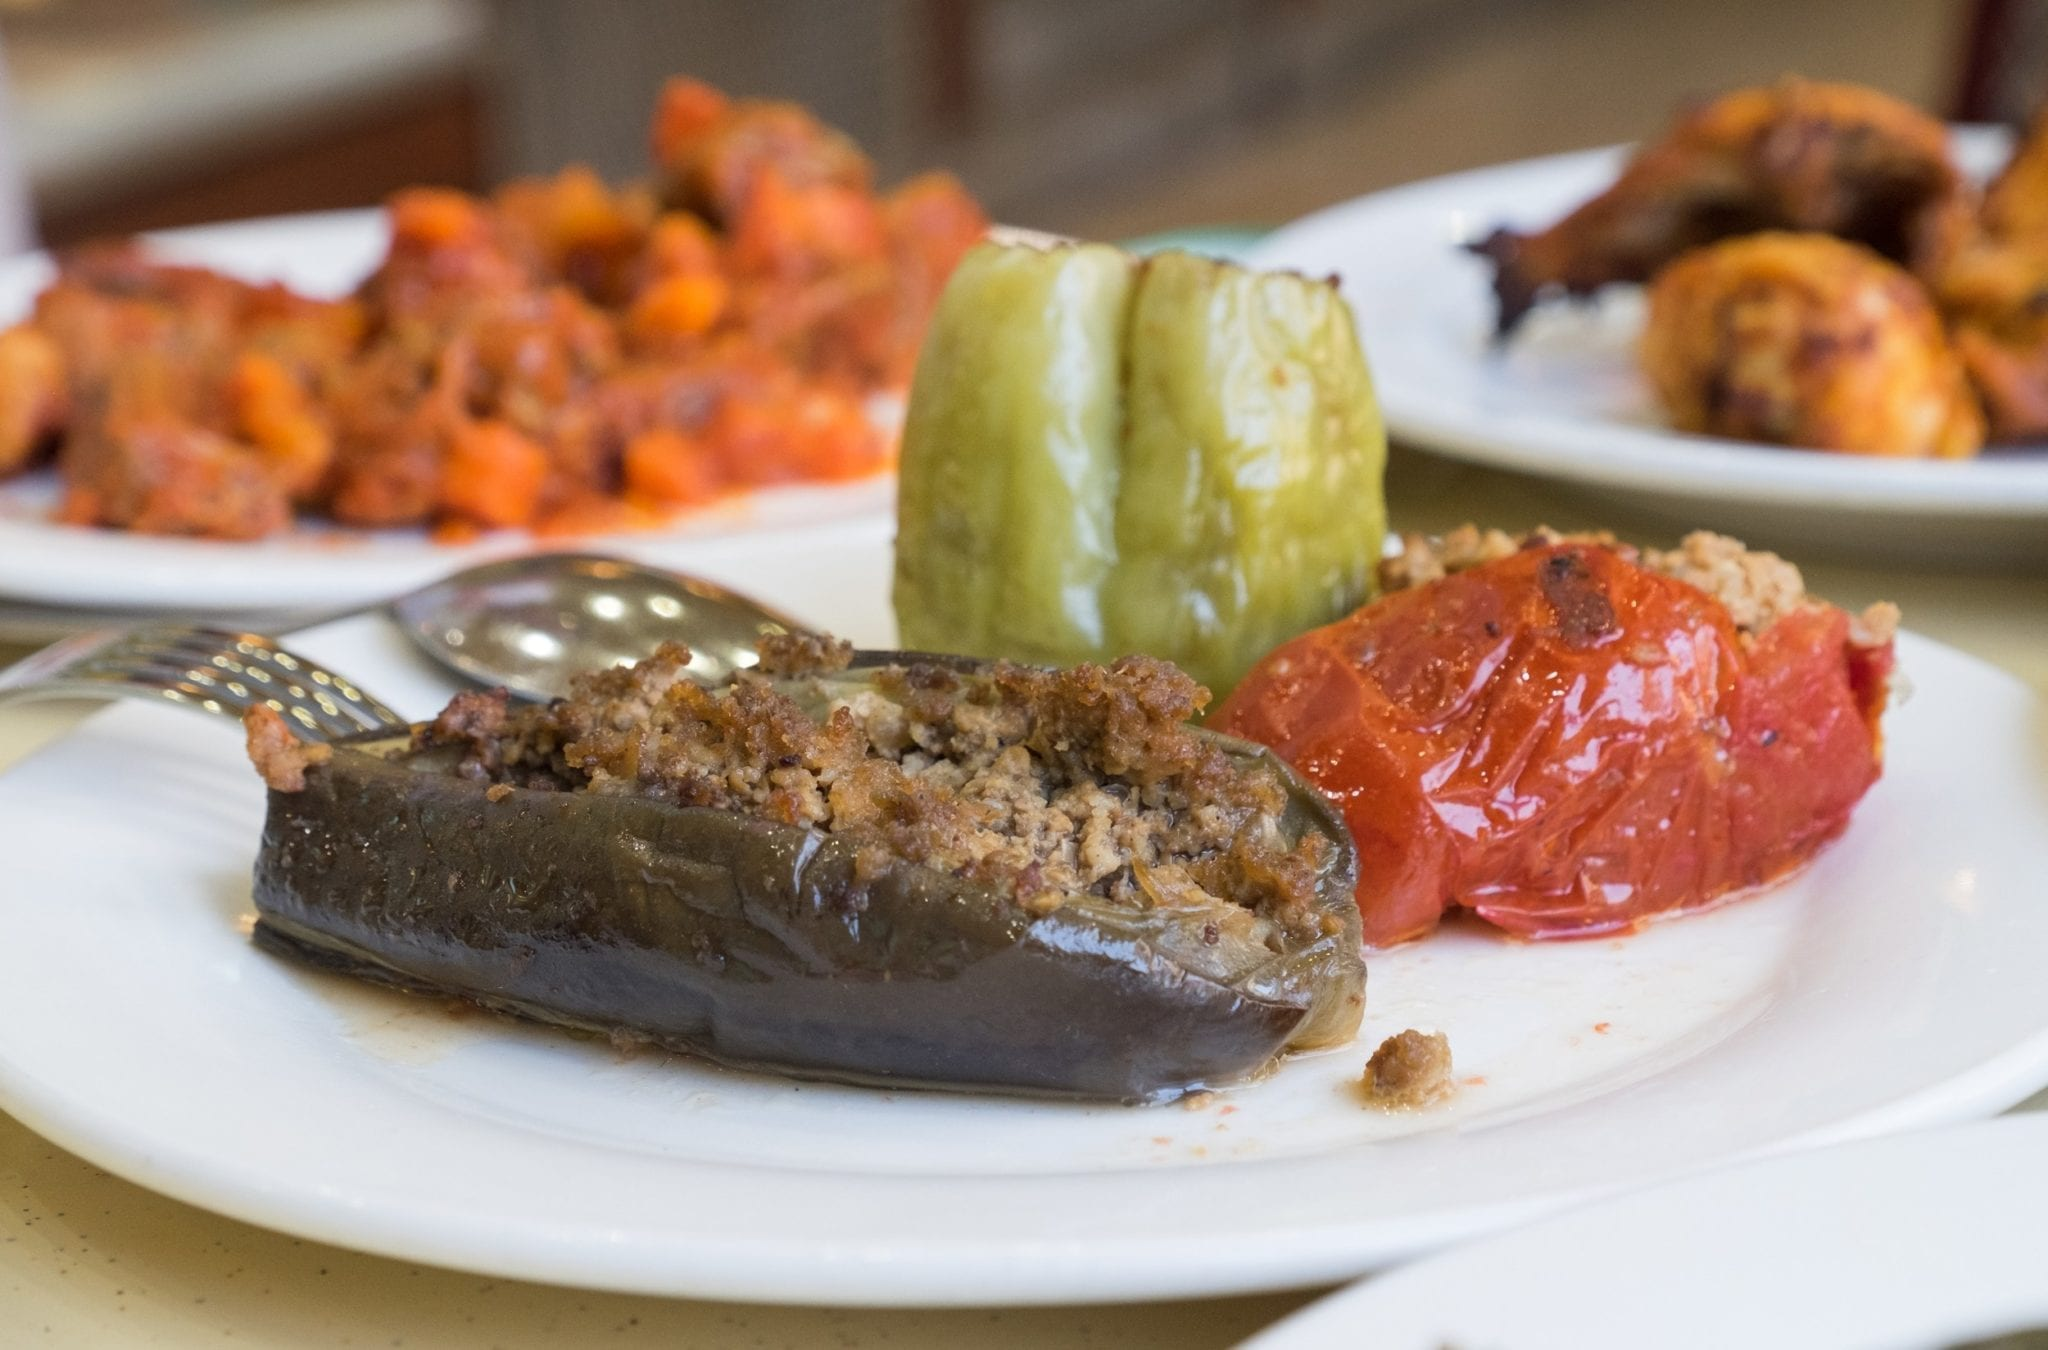 On a plate, an eggplant and two kinds of peppers stuffed with minced beef.